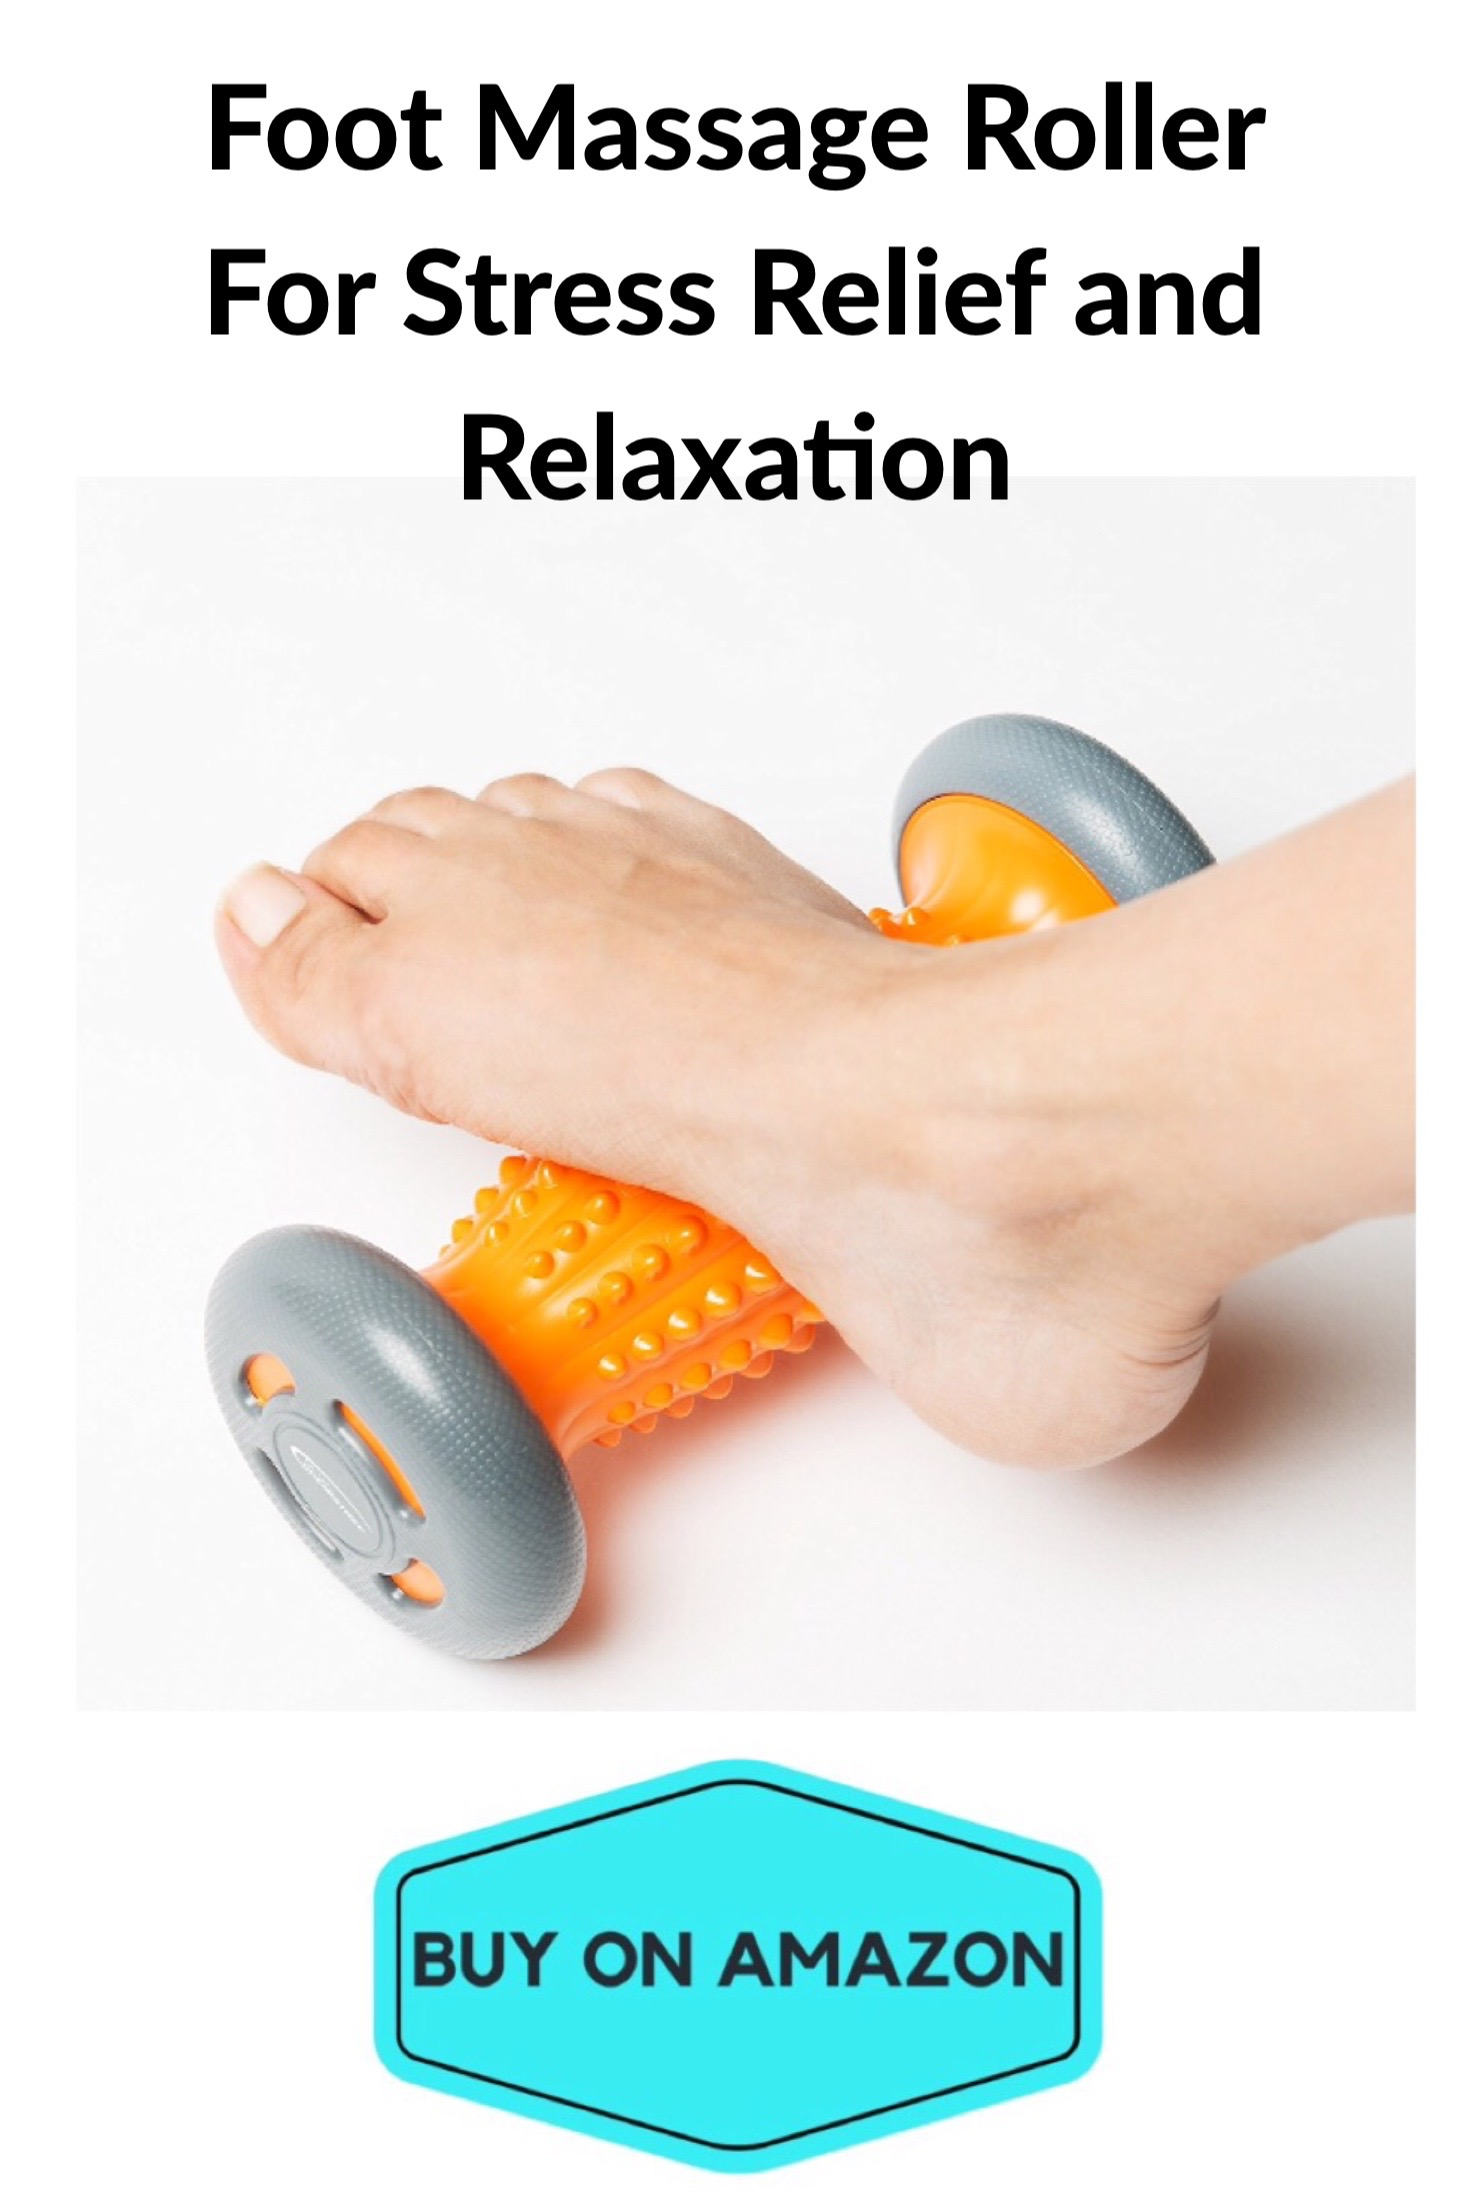 Foot Massage Roller For Stress Relief